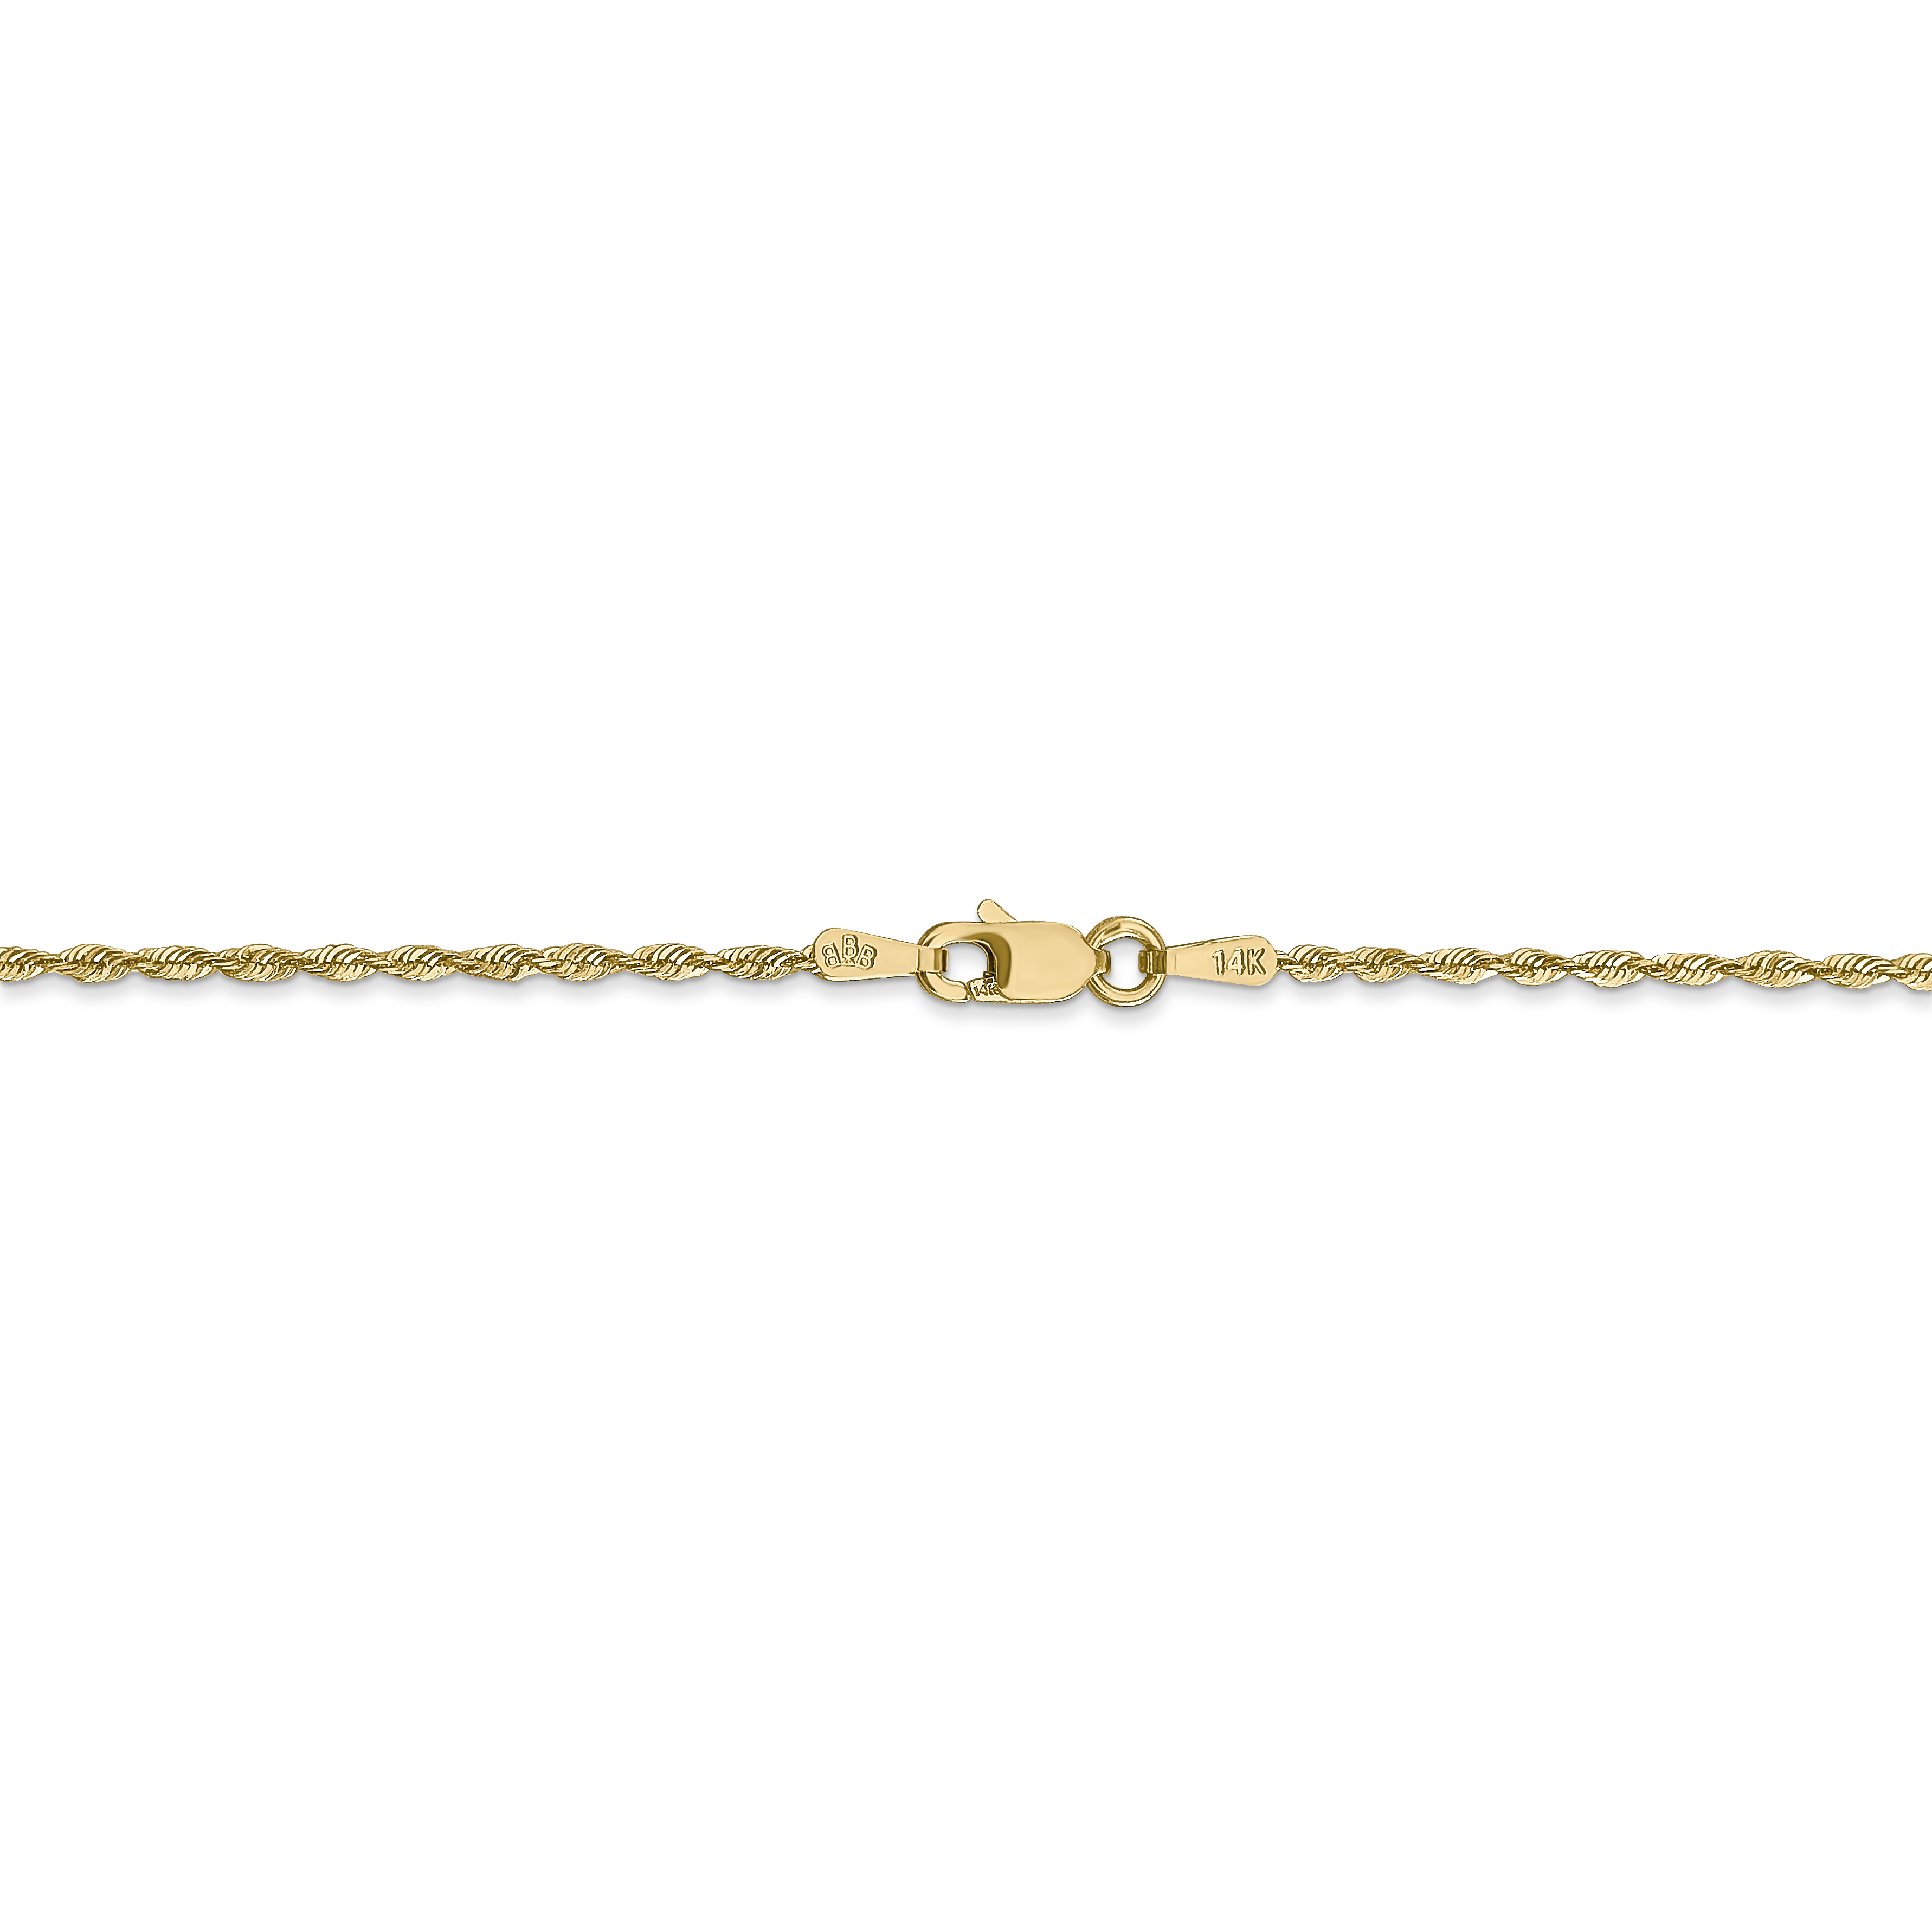 14k Yellow Gold 1.5mm Link Rope Chain Anklet Ankle Beach Bracelet 9 Inch Handmade Fine Jewelry Gifts For Women For Her - image 3 of 4